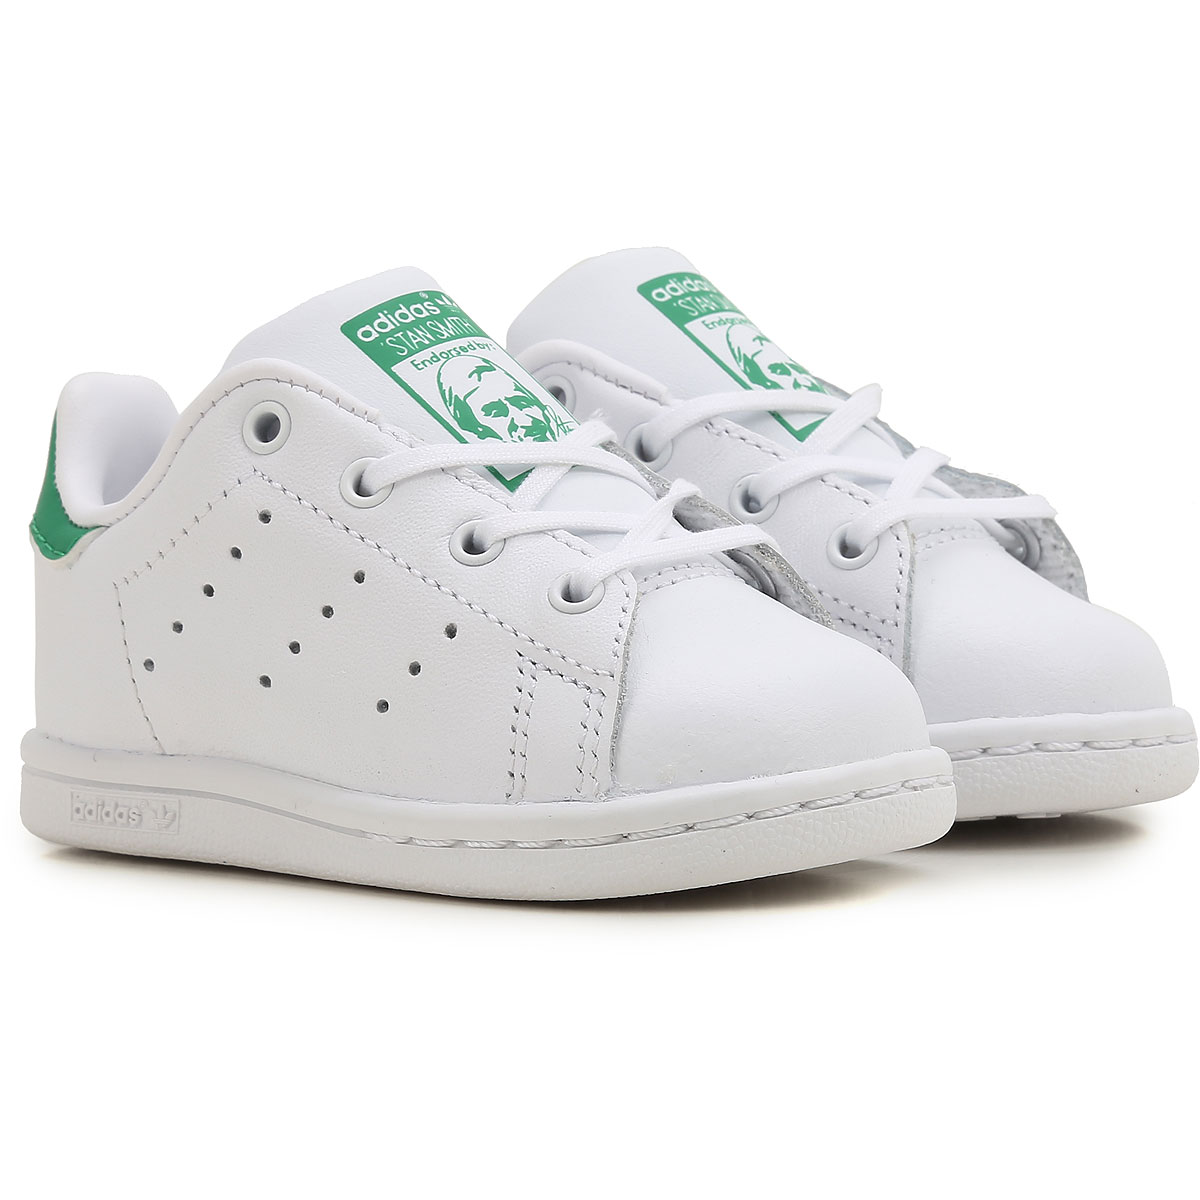 Image of Adidas Kids Shoes for Boys, White, Leather, 2017, 21 26